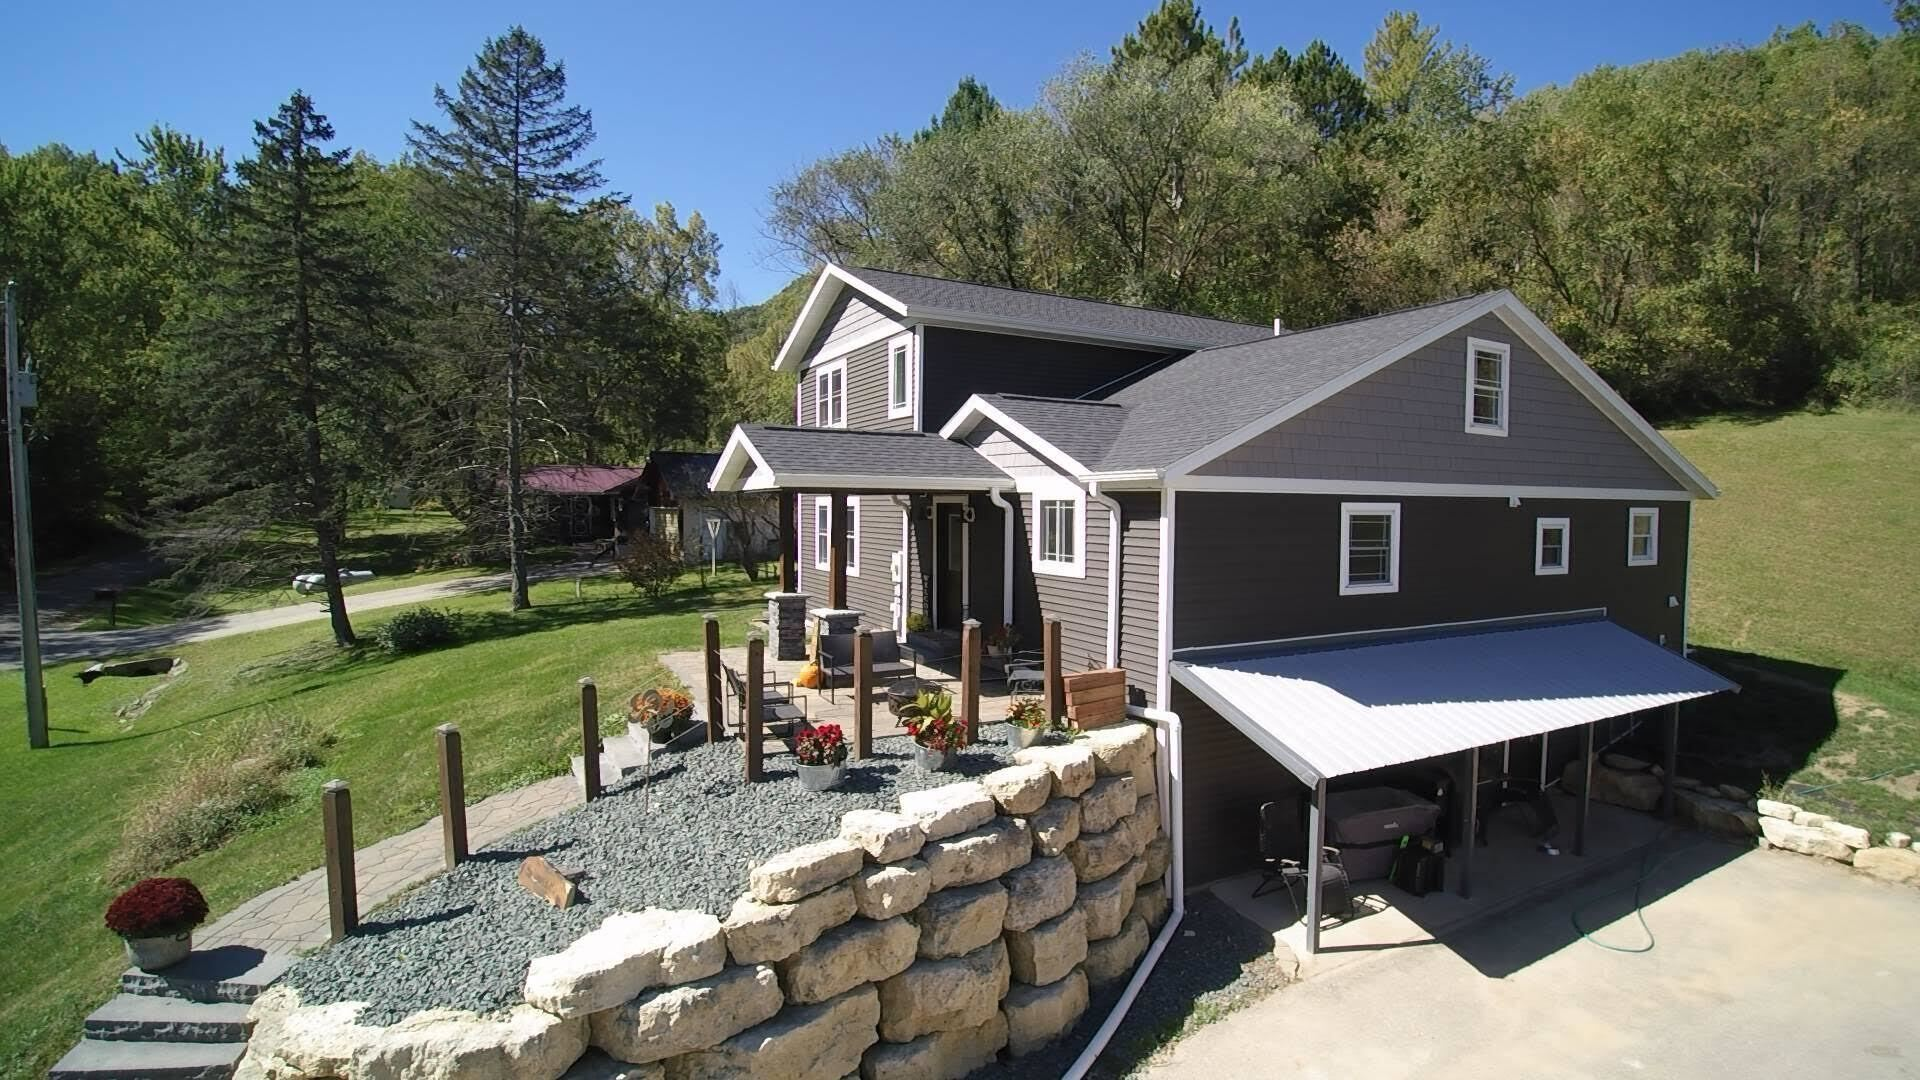 W4824 Puent Rd, Barre, WI 54601 - MLS#: 1762740